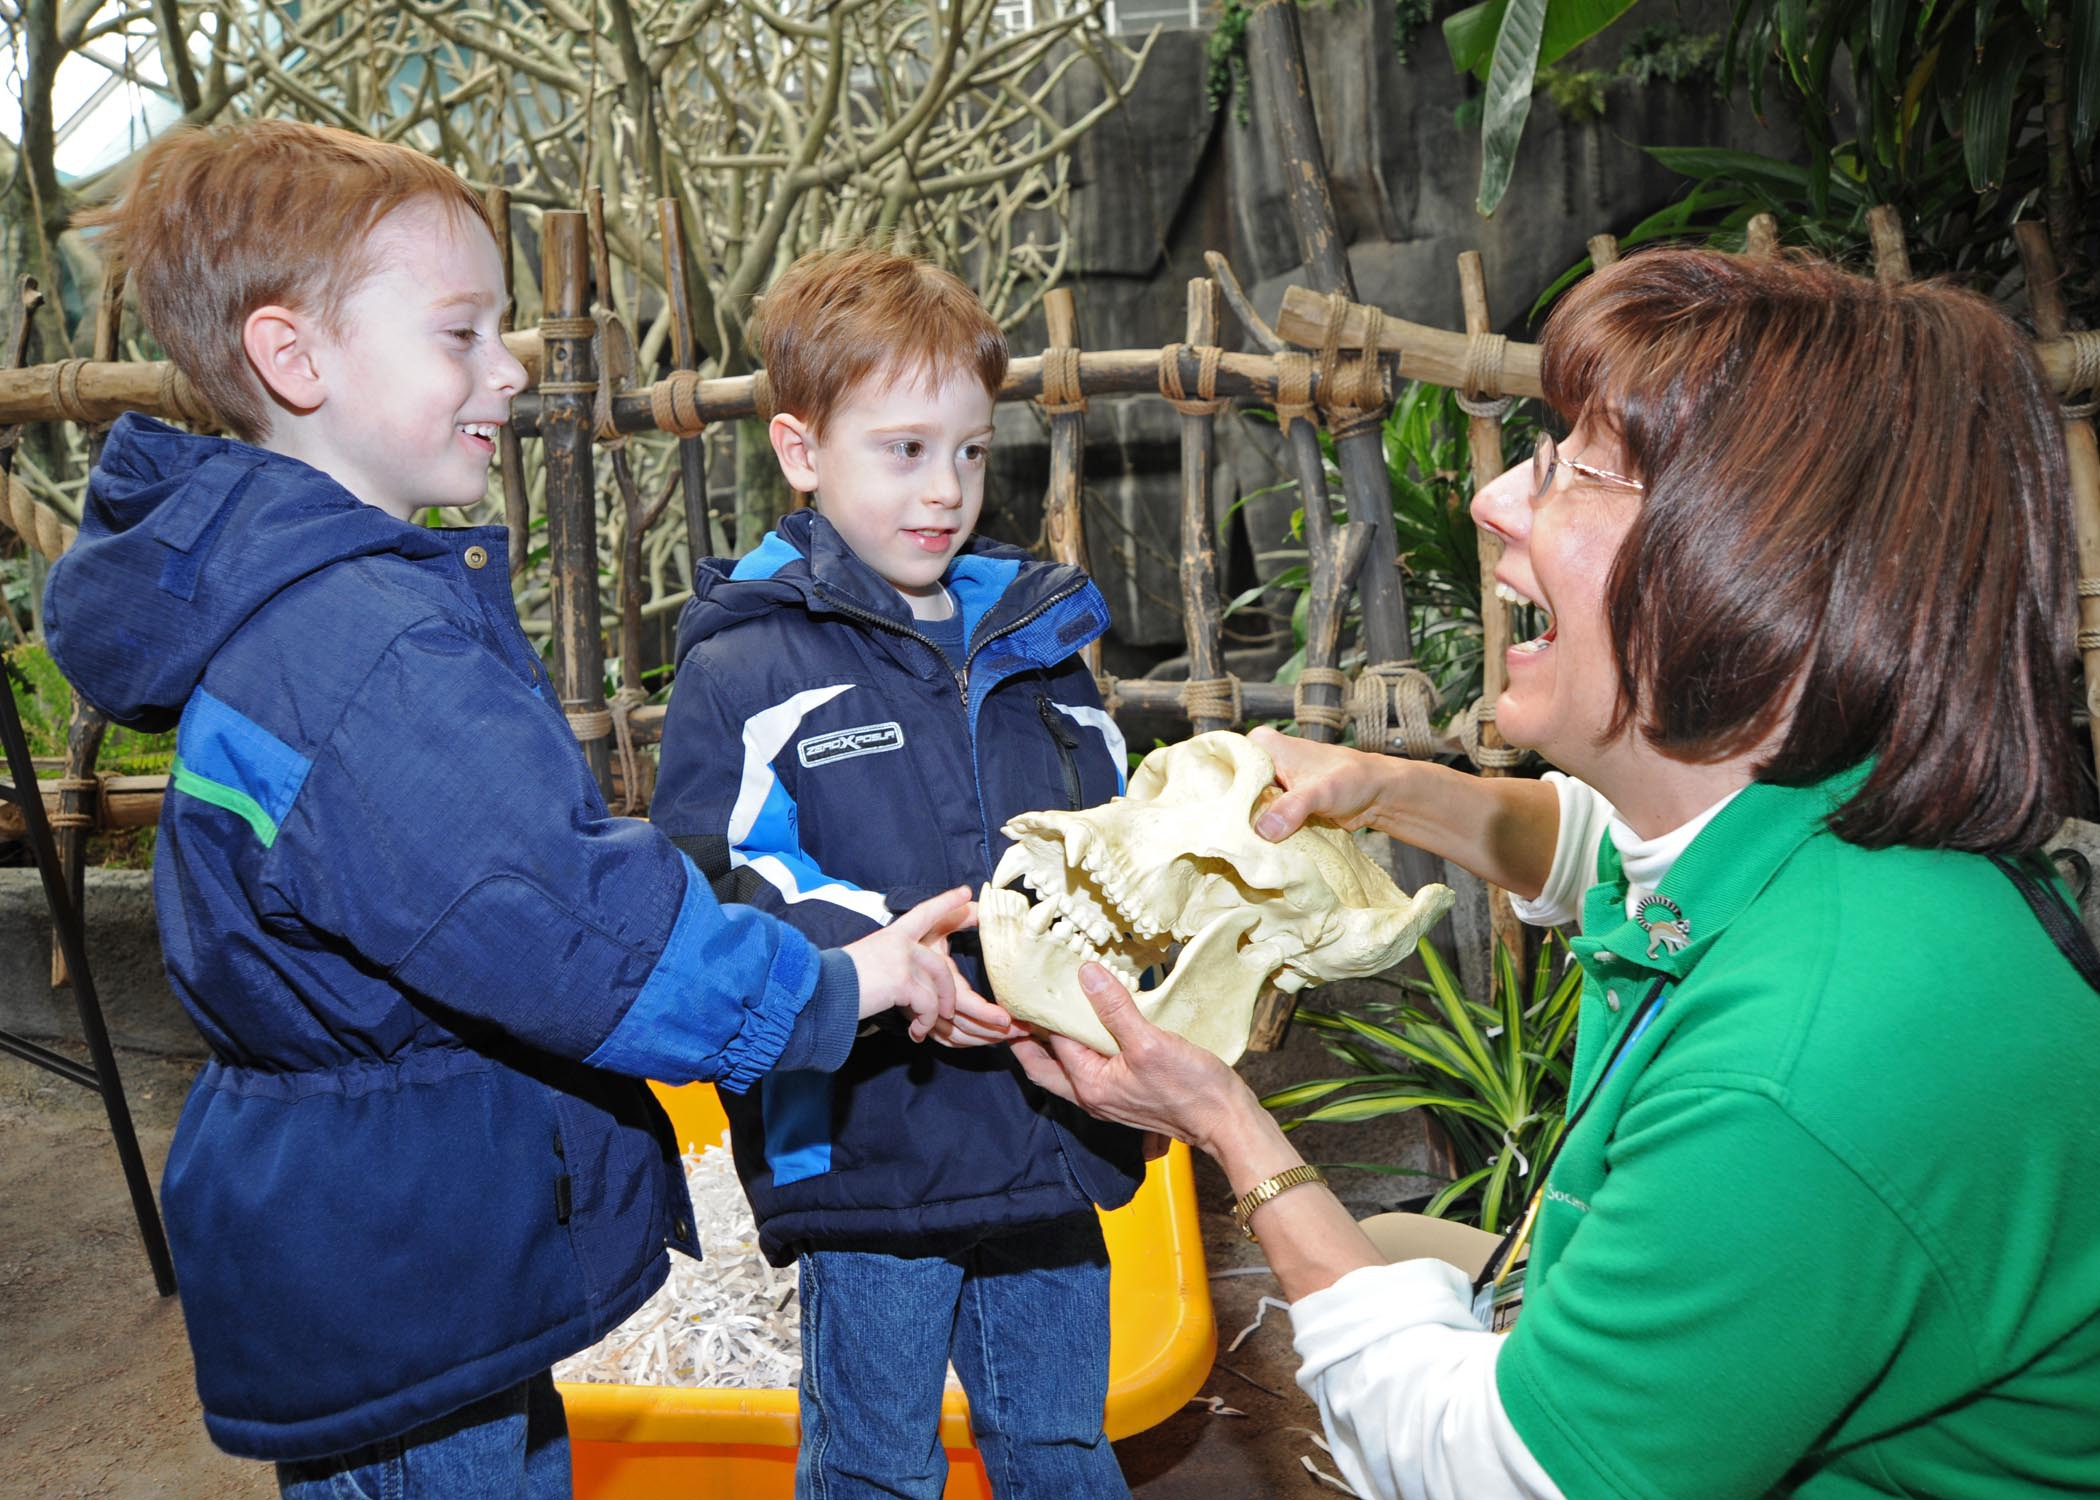 An educator shows two little boys a replica gorilla skull